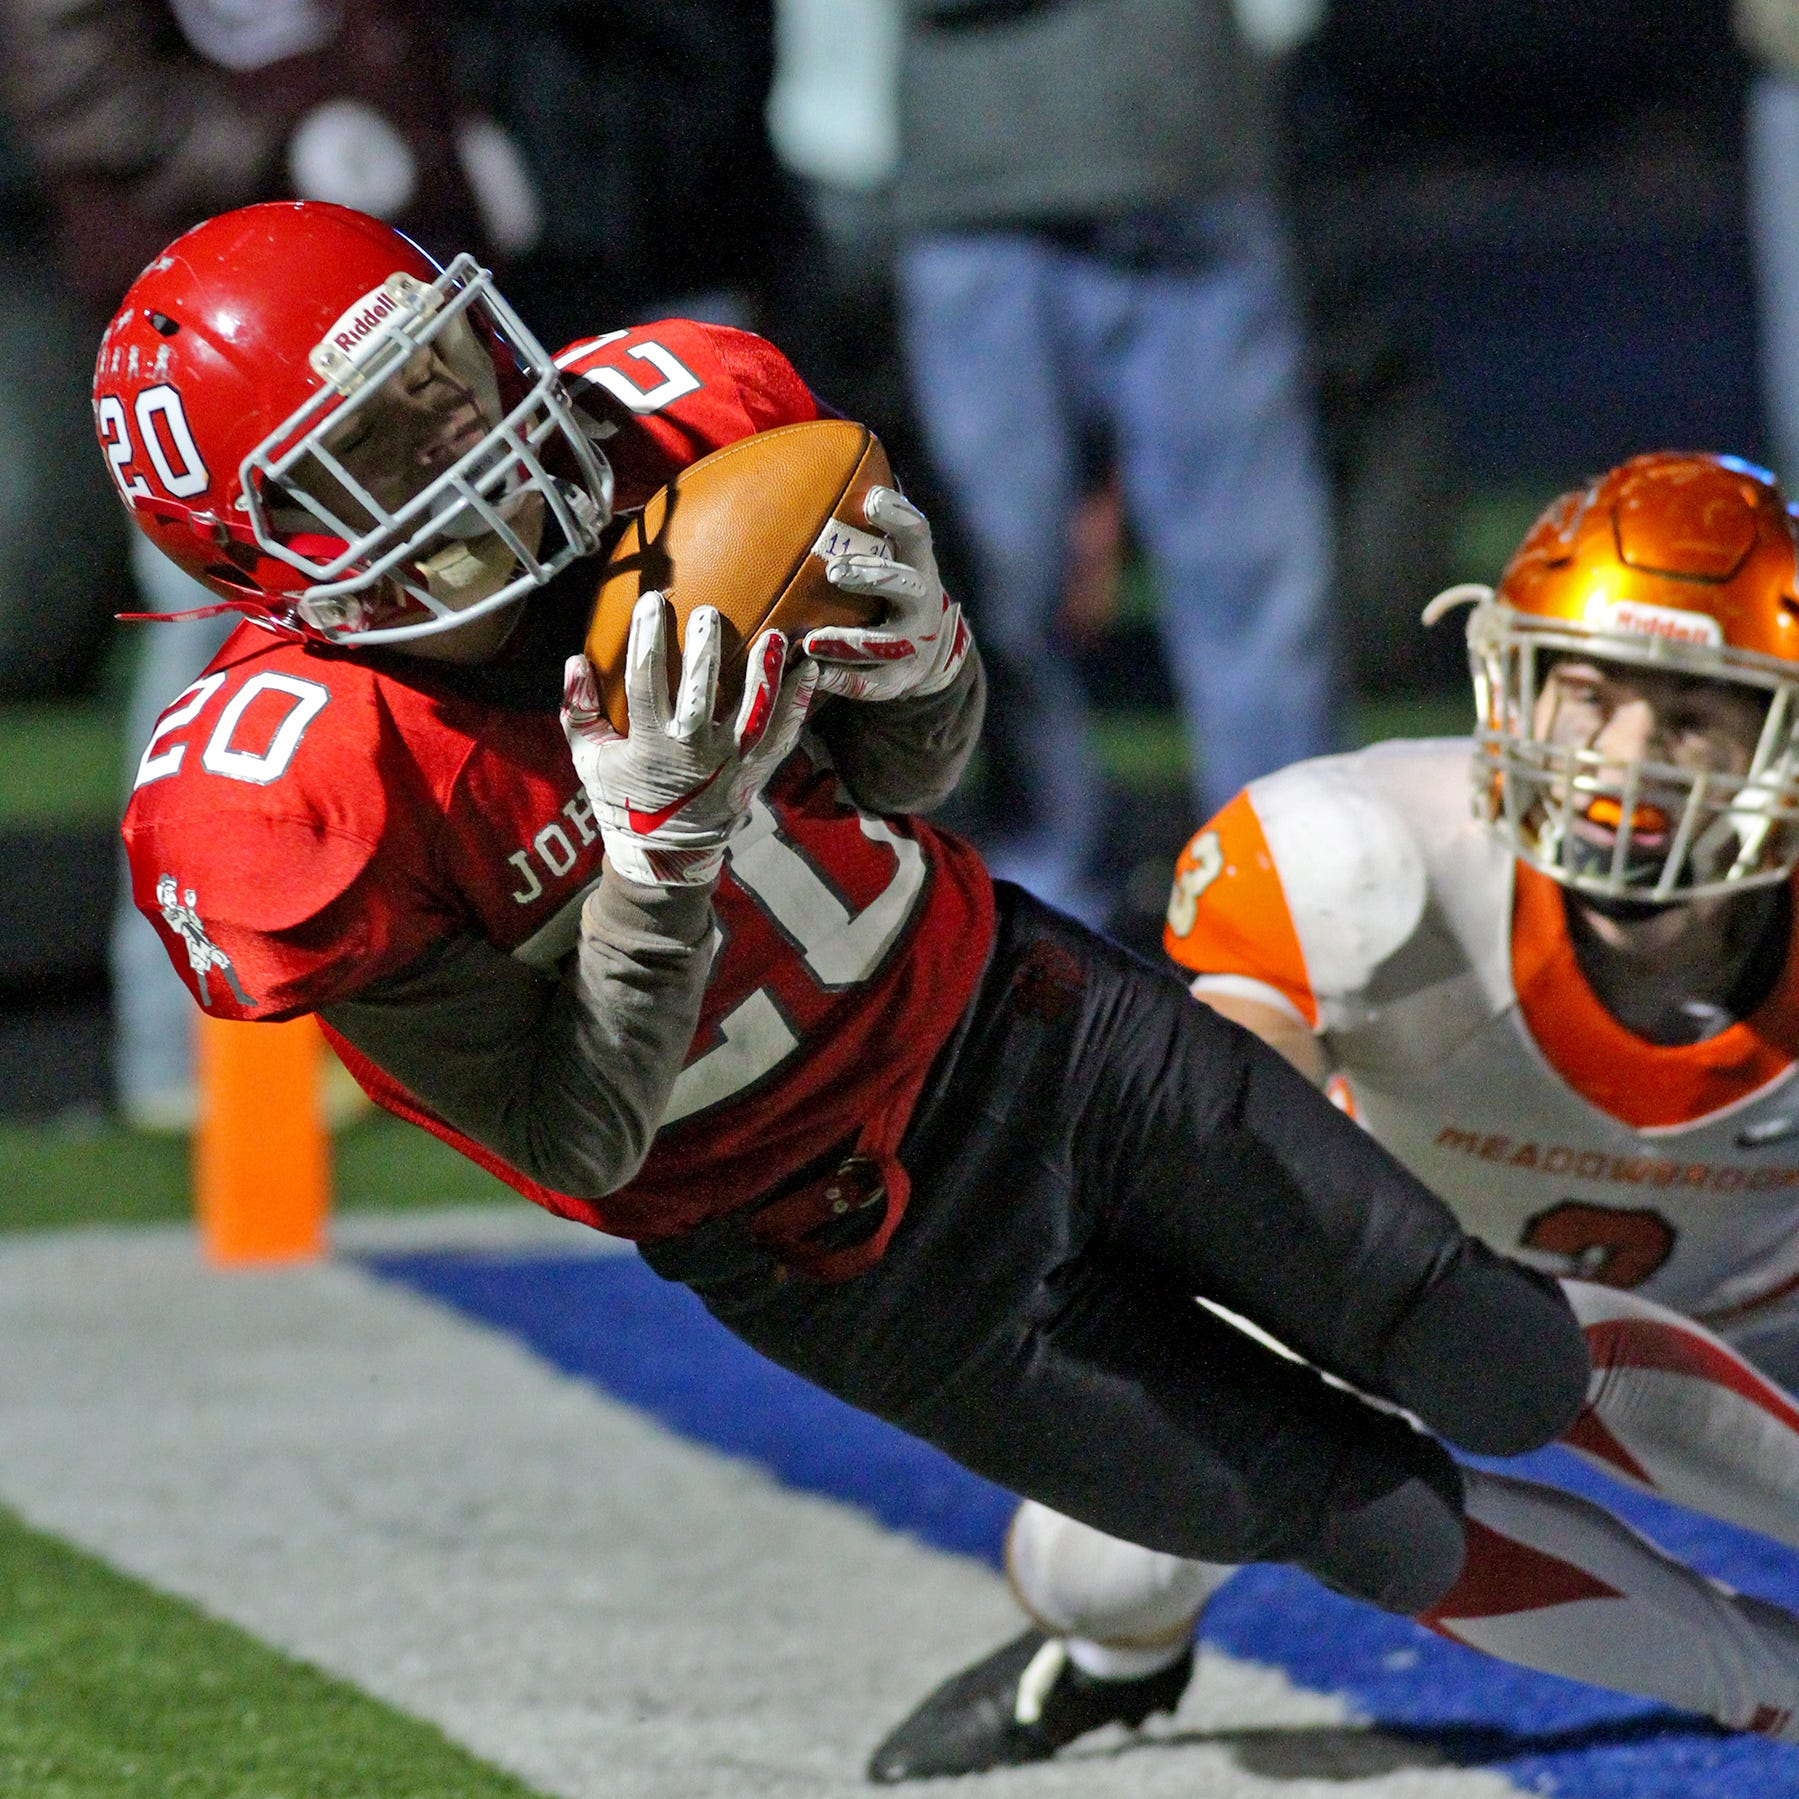 Johnstown rolls over Meadowbrook 45-14, secures second Final Four berth